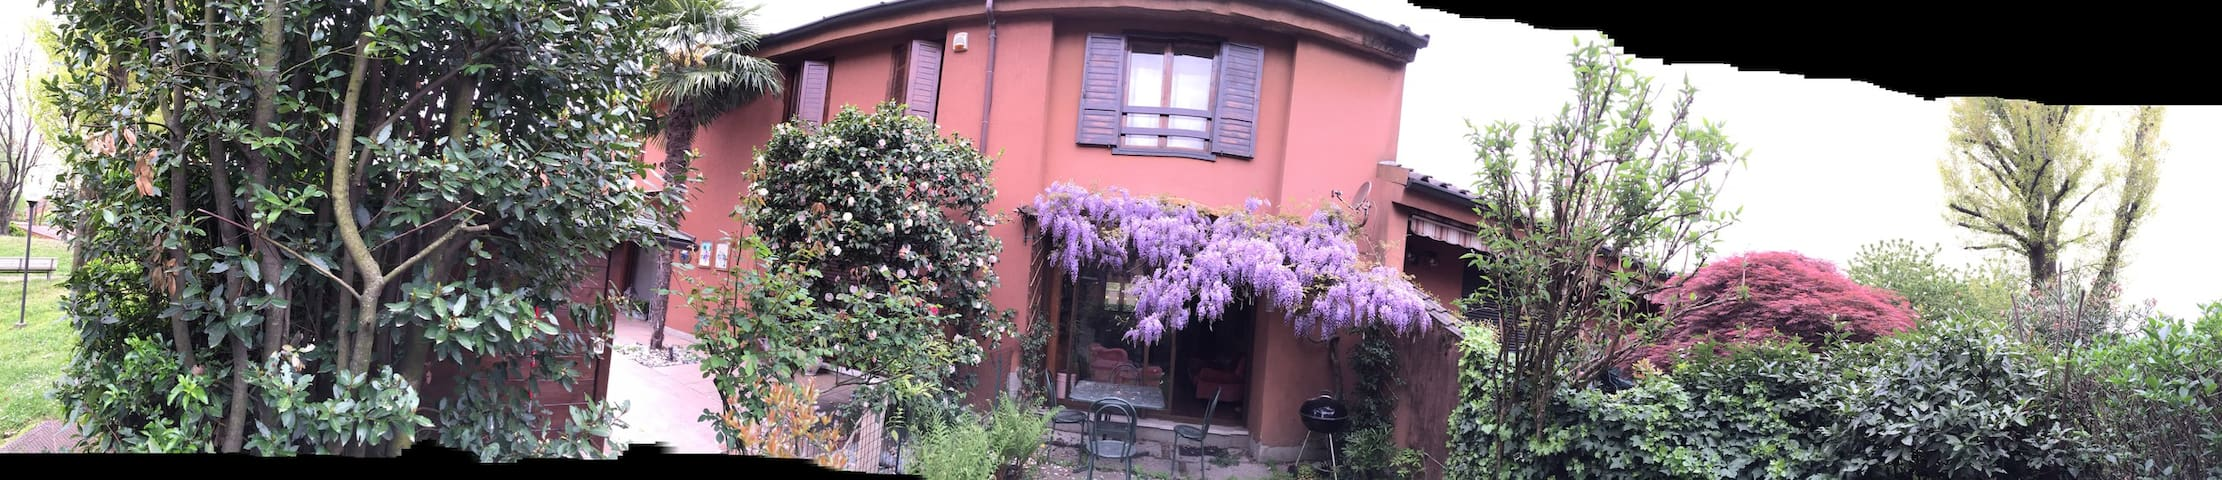 Glycine Villa 30 min from Milan - Arlate - House